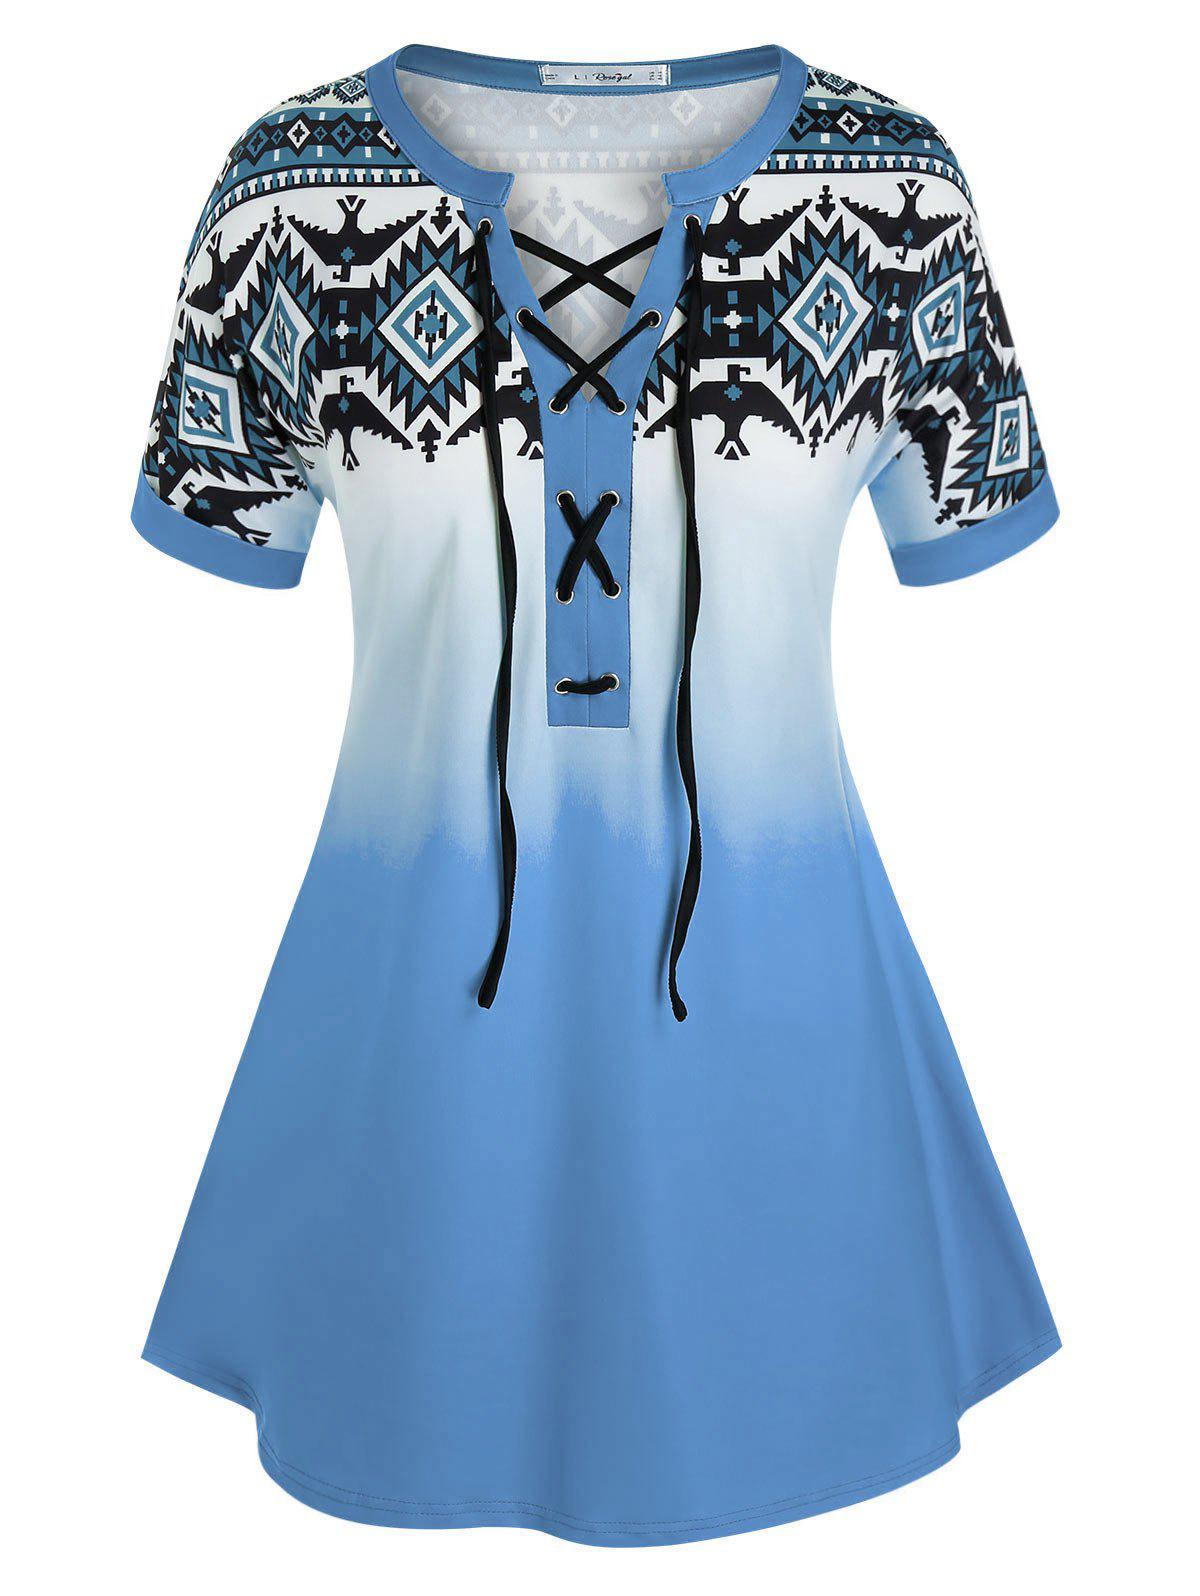 Plus Size Lace-up Geometric Print Cuffed Sleeve Tee - LIGHT BLUE 4X